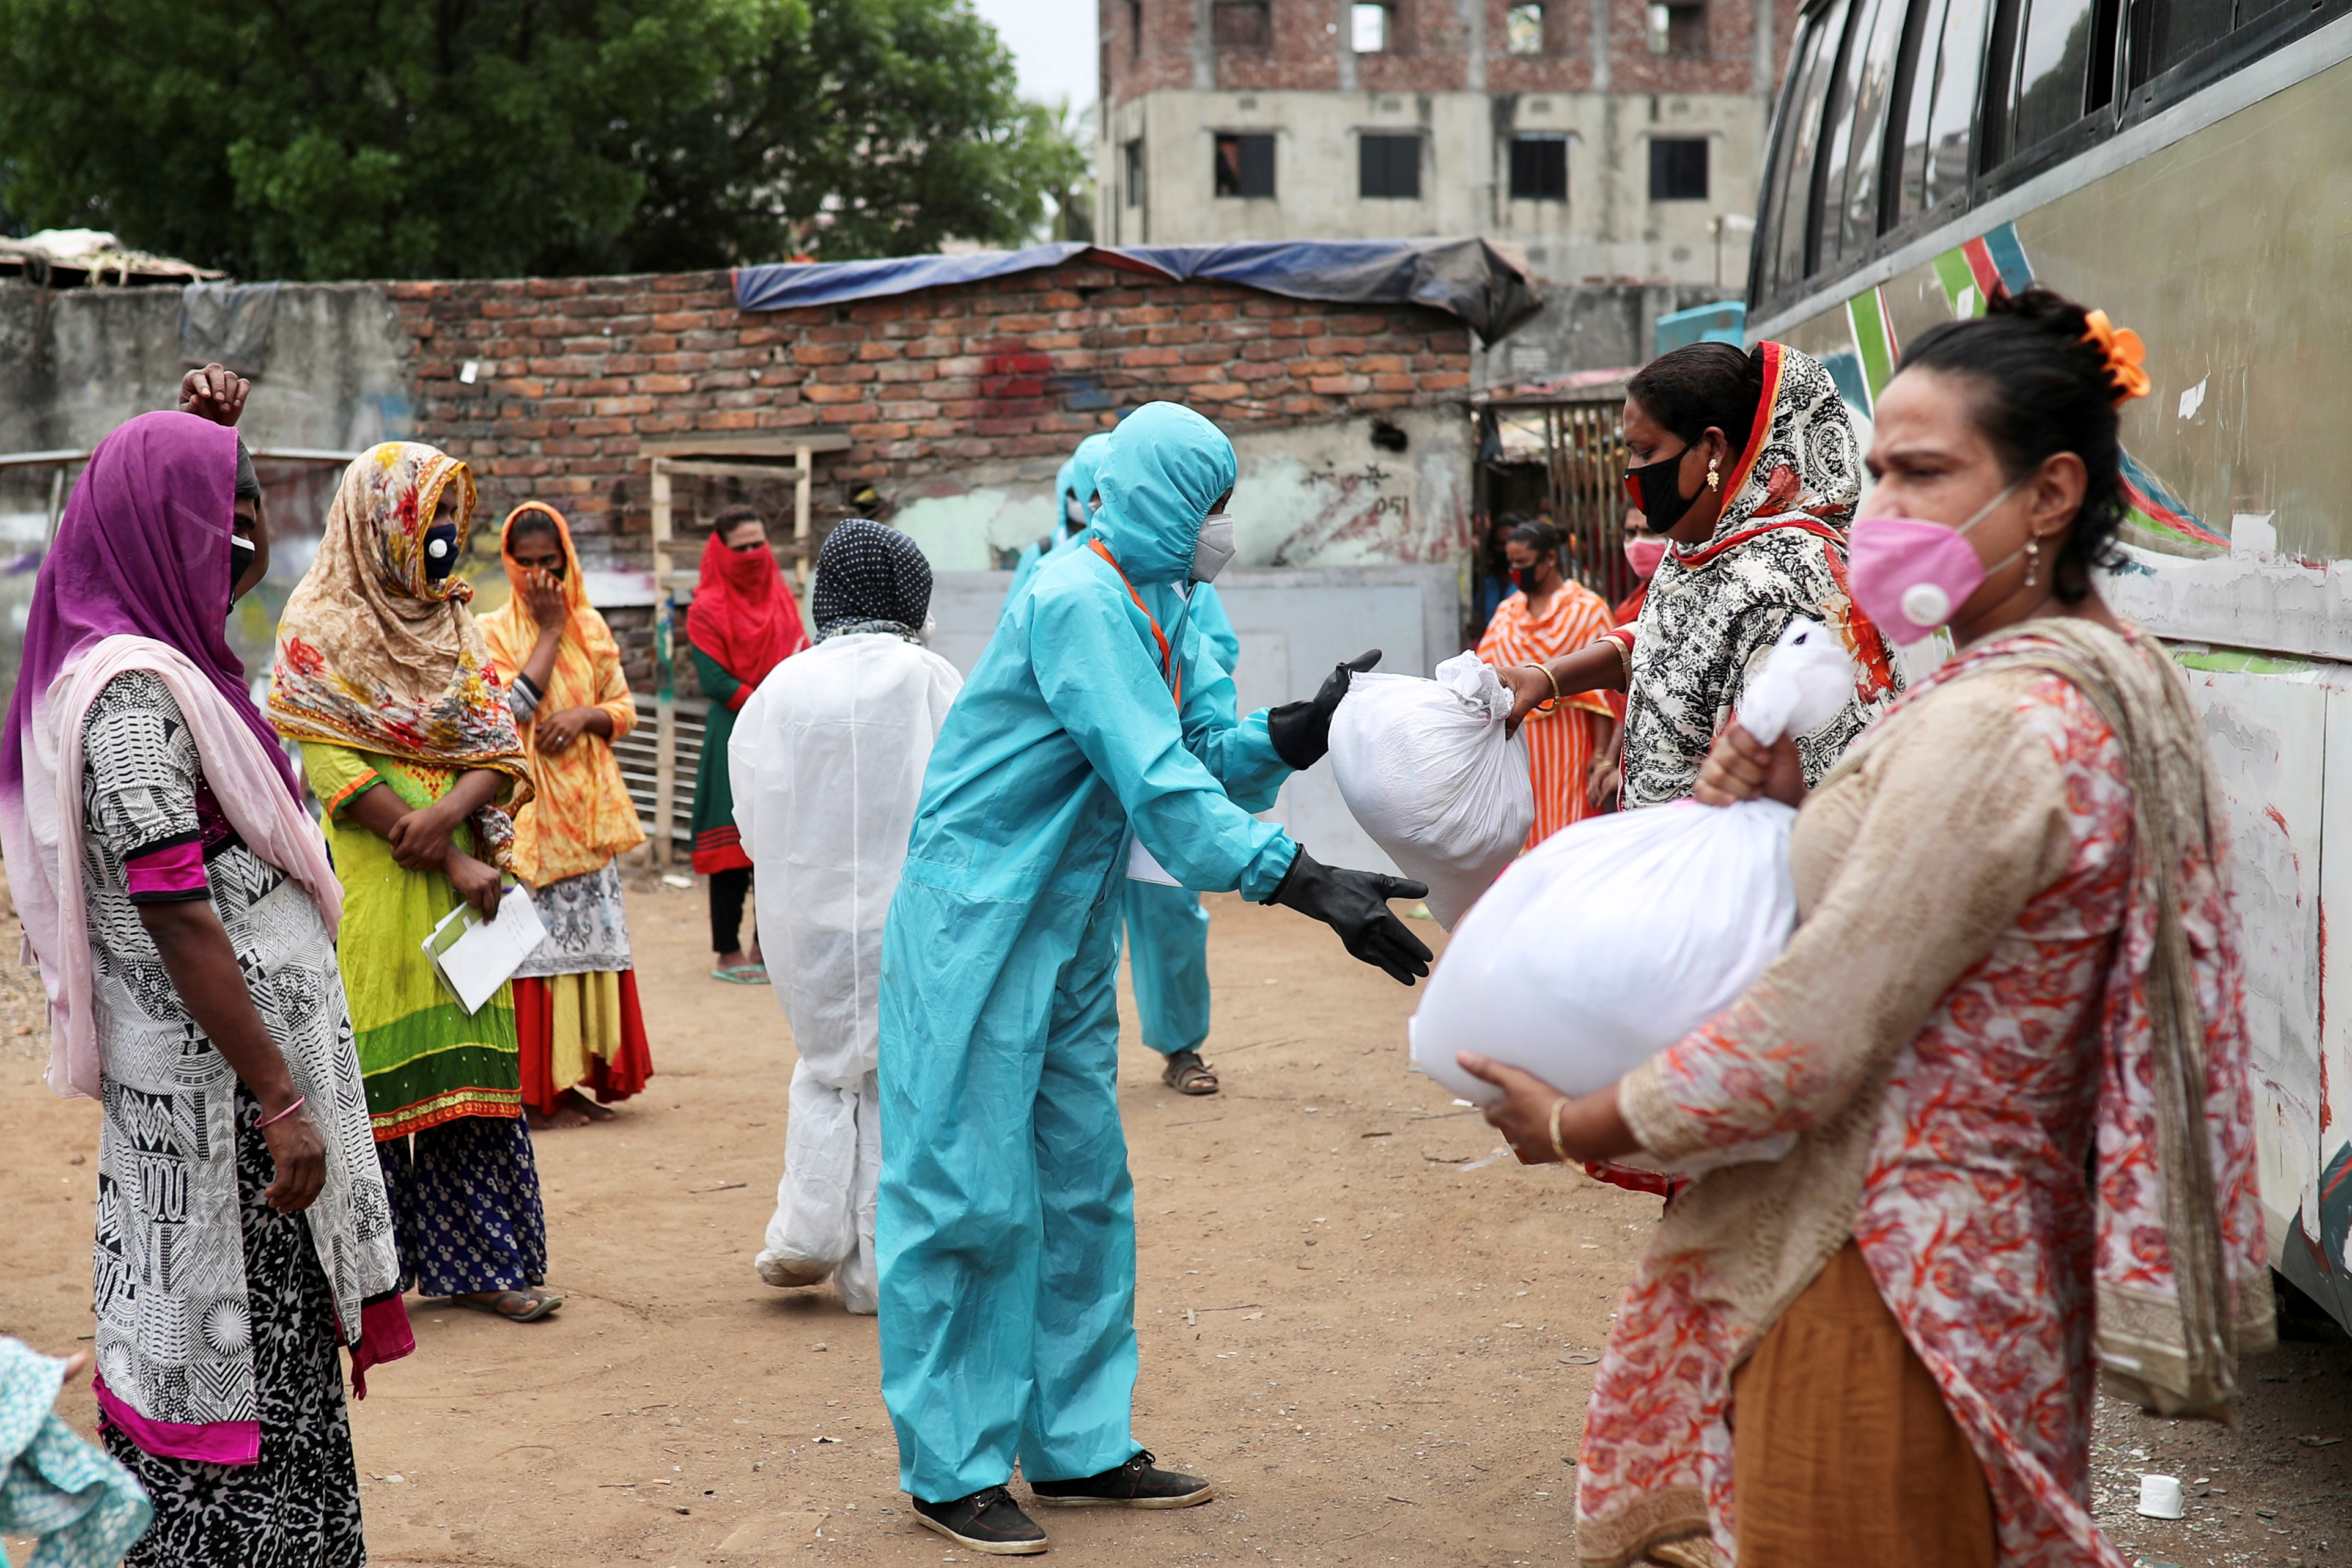 FILE PHOTO: Volunteers from an organisation distribute relief supplies among transgenders, amid the coronavirus disease (COVID-19), in Dhaka, Bangladesh, April 23, 2020. REUTERS/Mohammad Ponir Hossain/File Photo